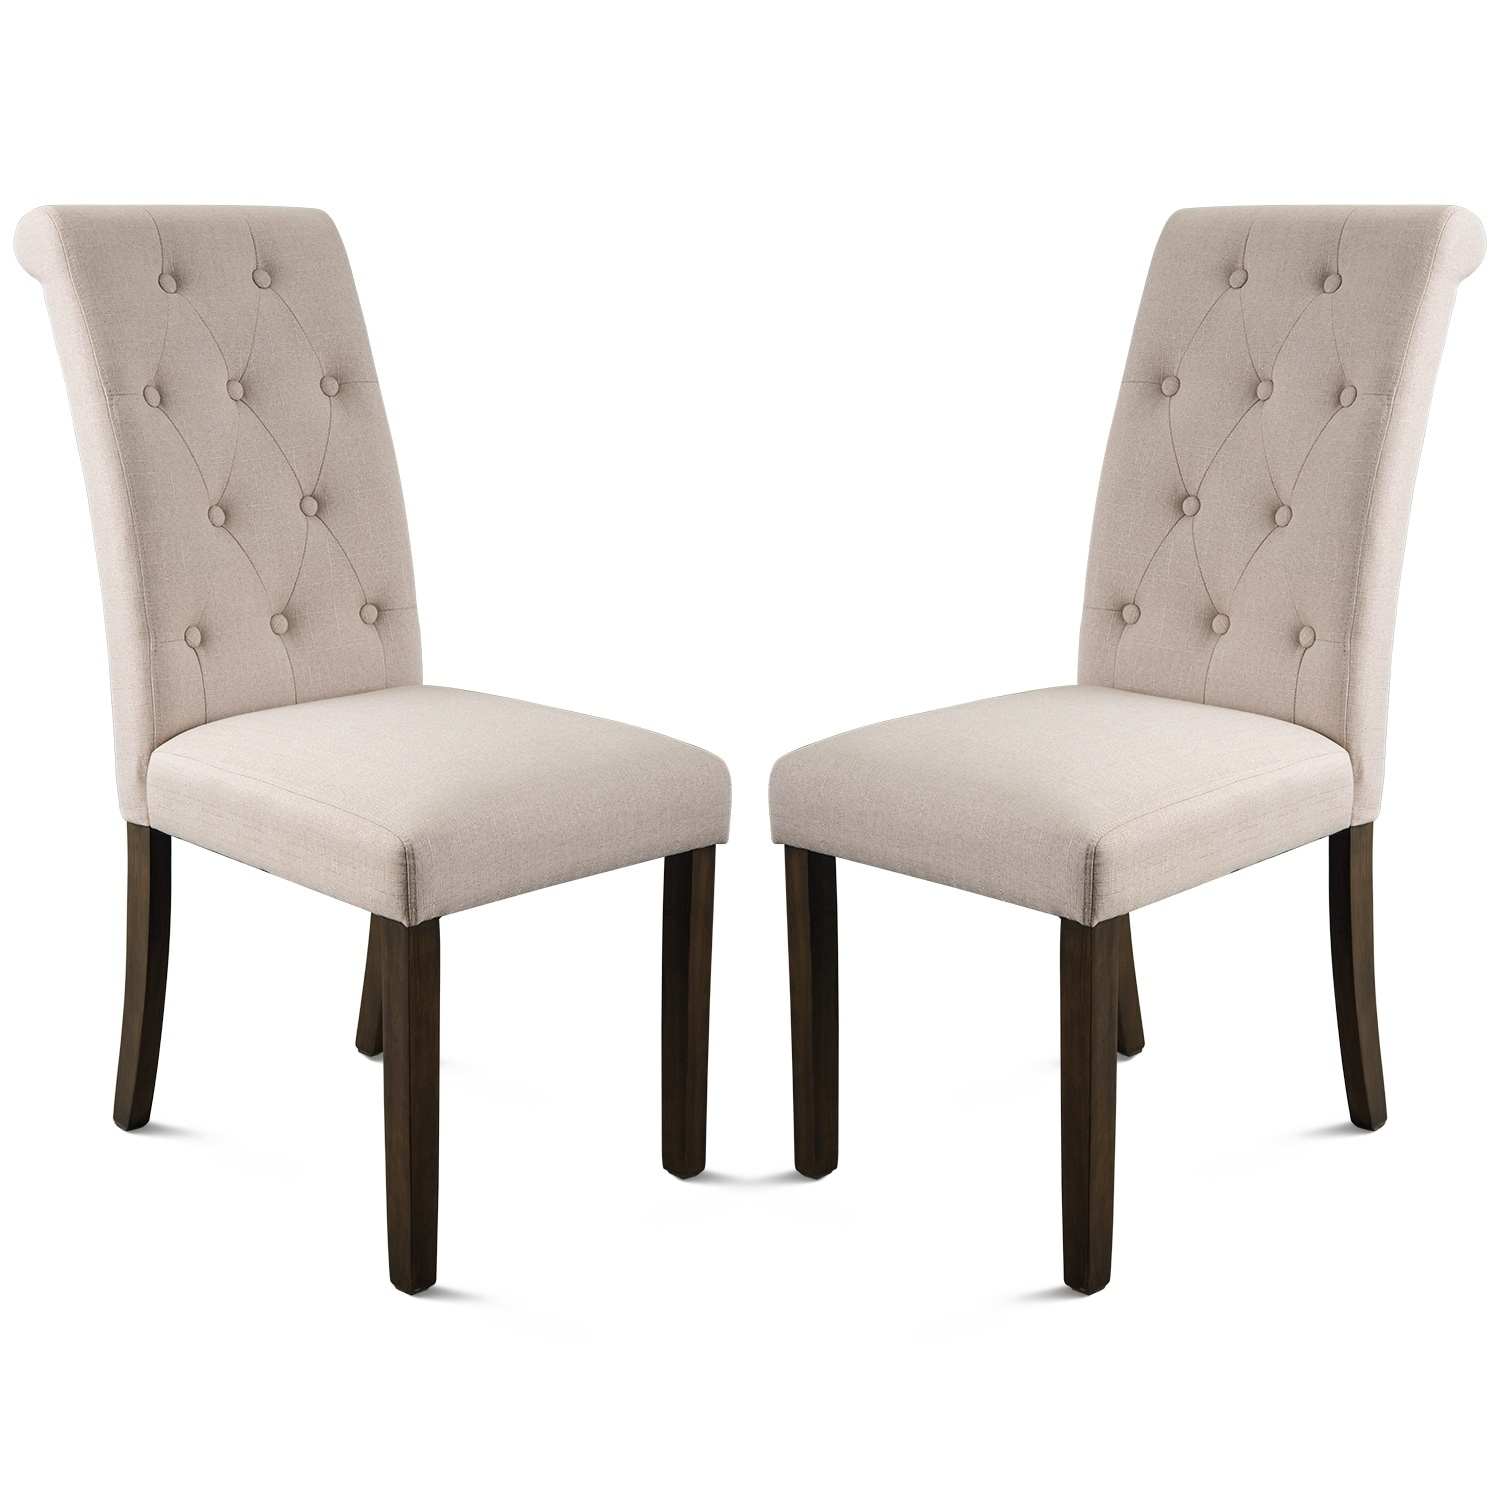 225 & Merax Noble and Elegant Solid Wood Tufted Dining Chair (Set of 2)